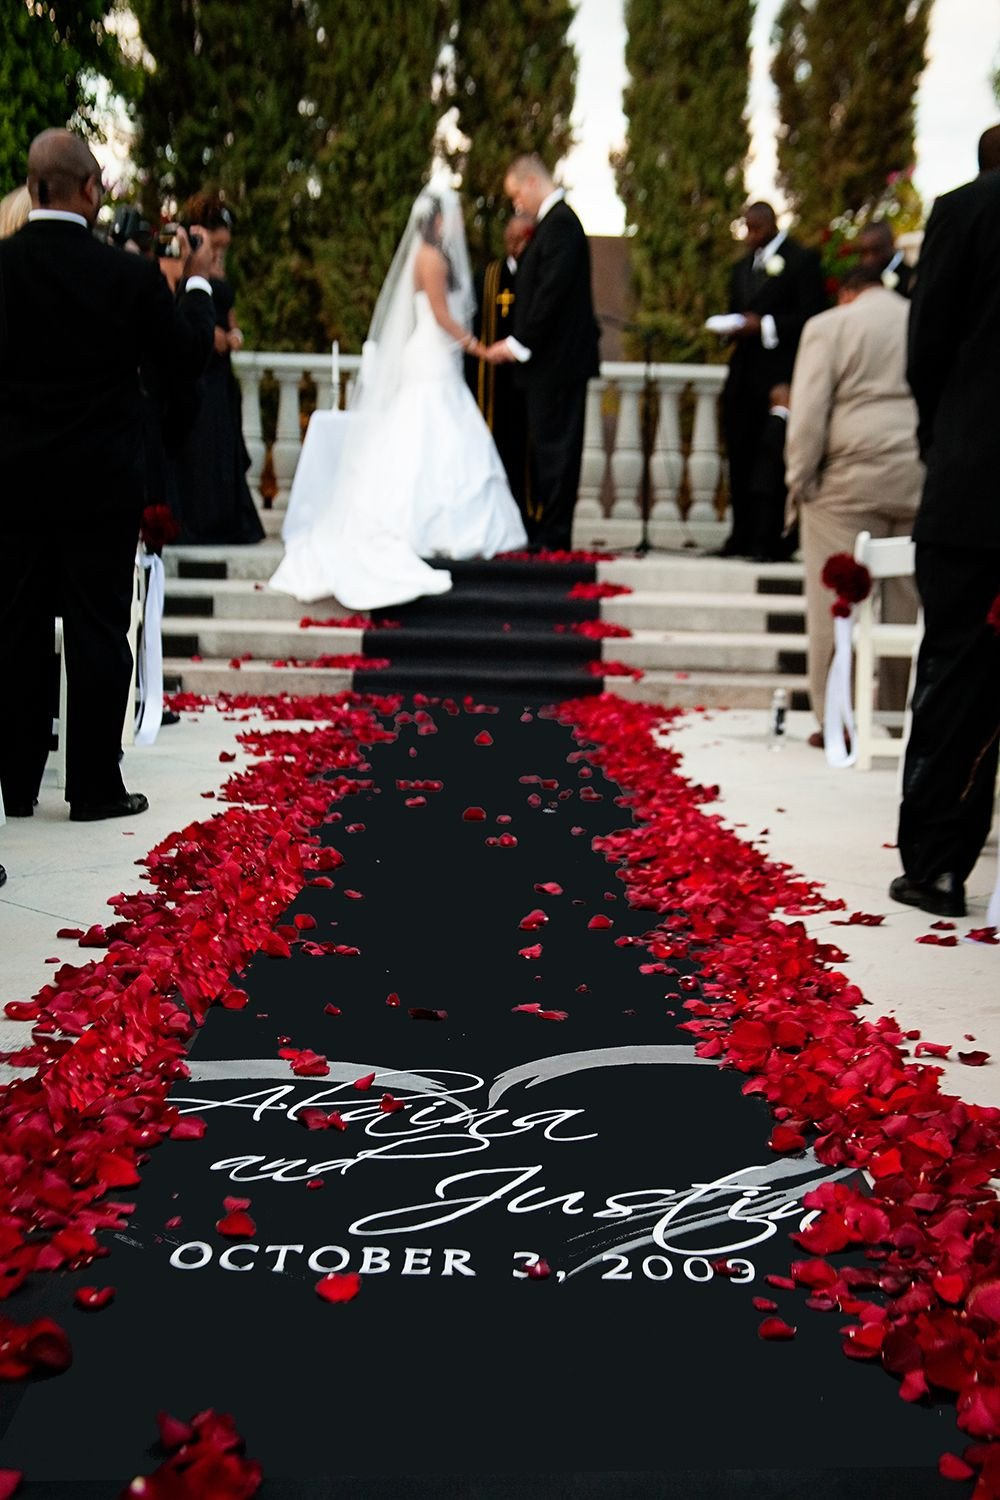 Wedding Decor Red and White Lovely Black and Red Wedding Ideas Wedding Ideas